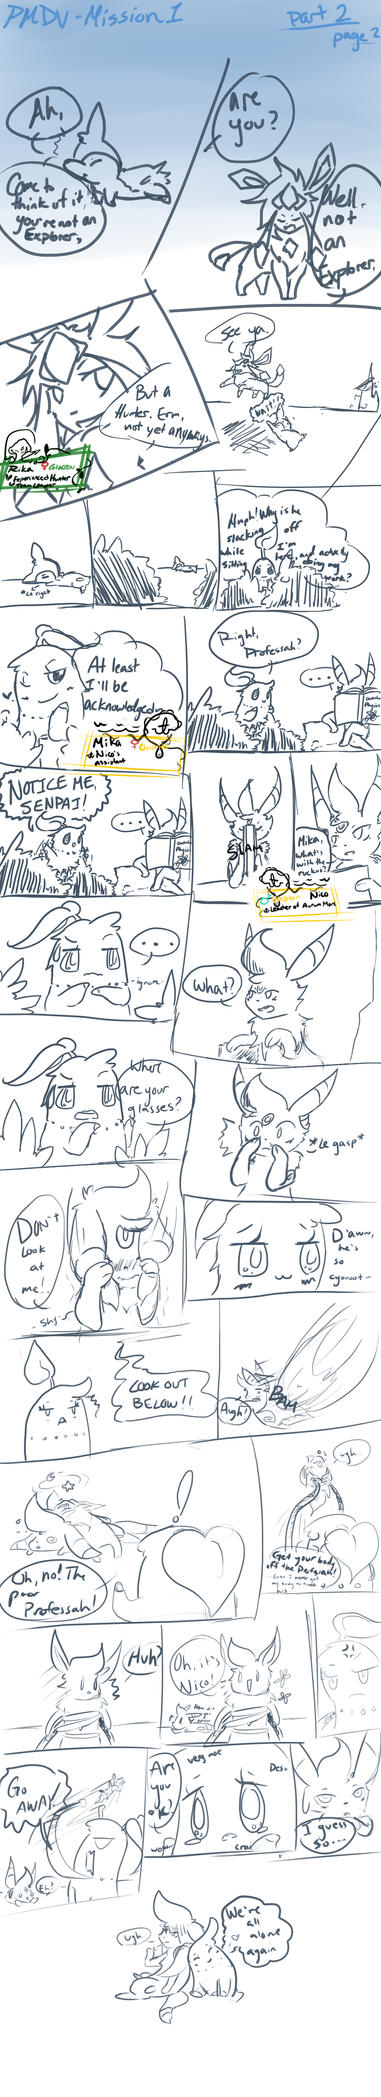 PMDU Mission1 Part 2 p2 by KawaiiManaphy